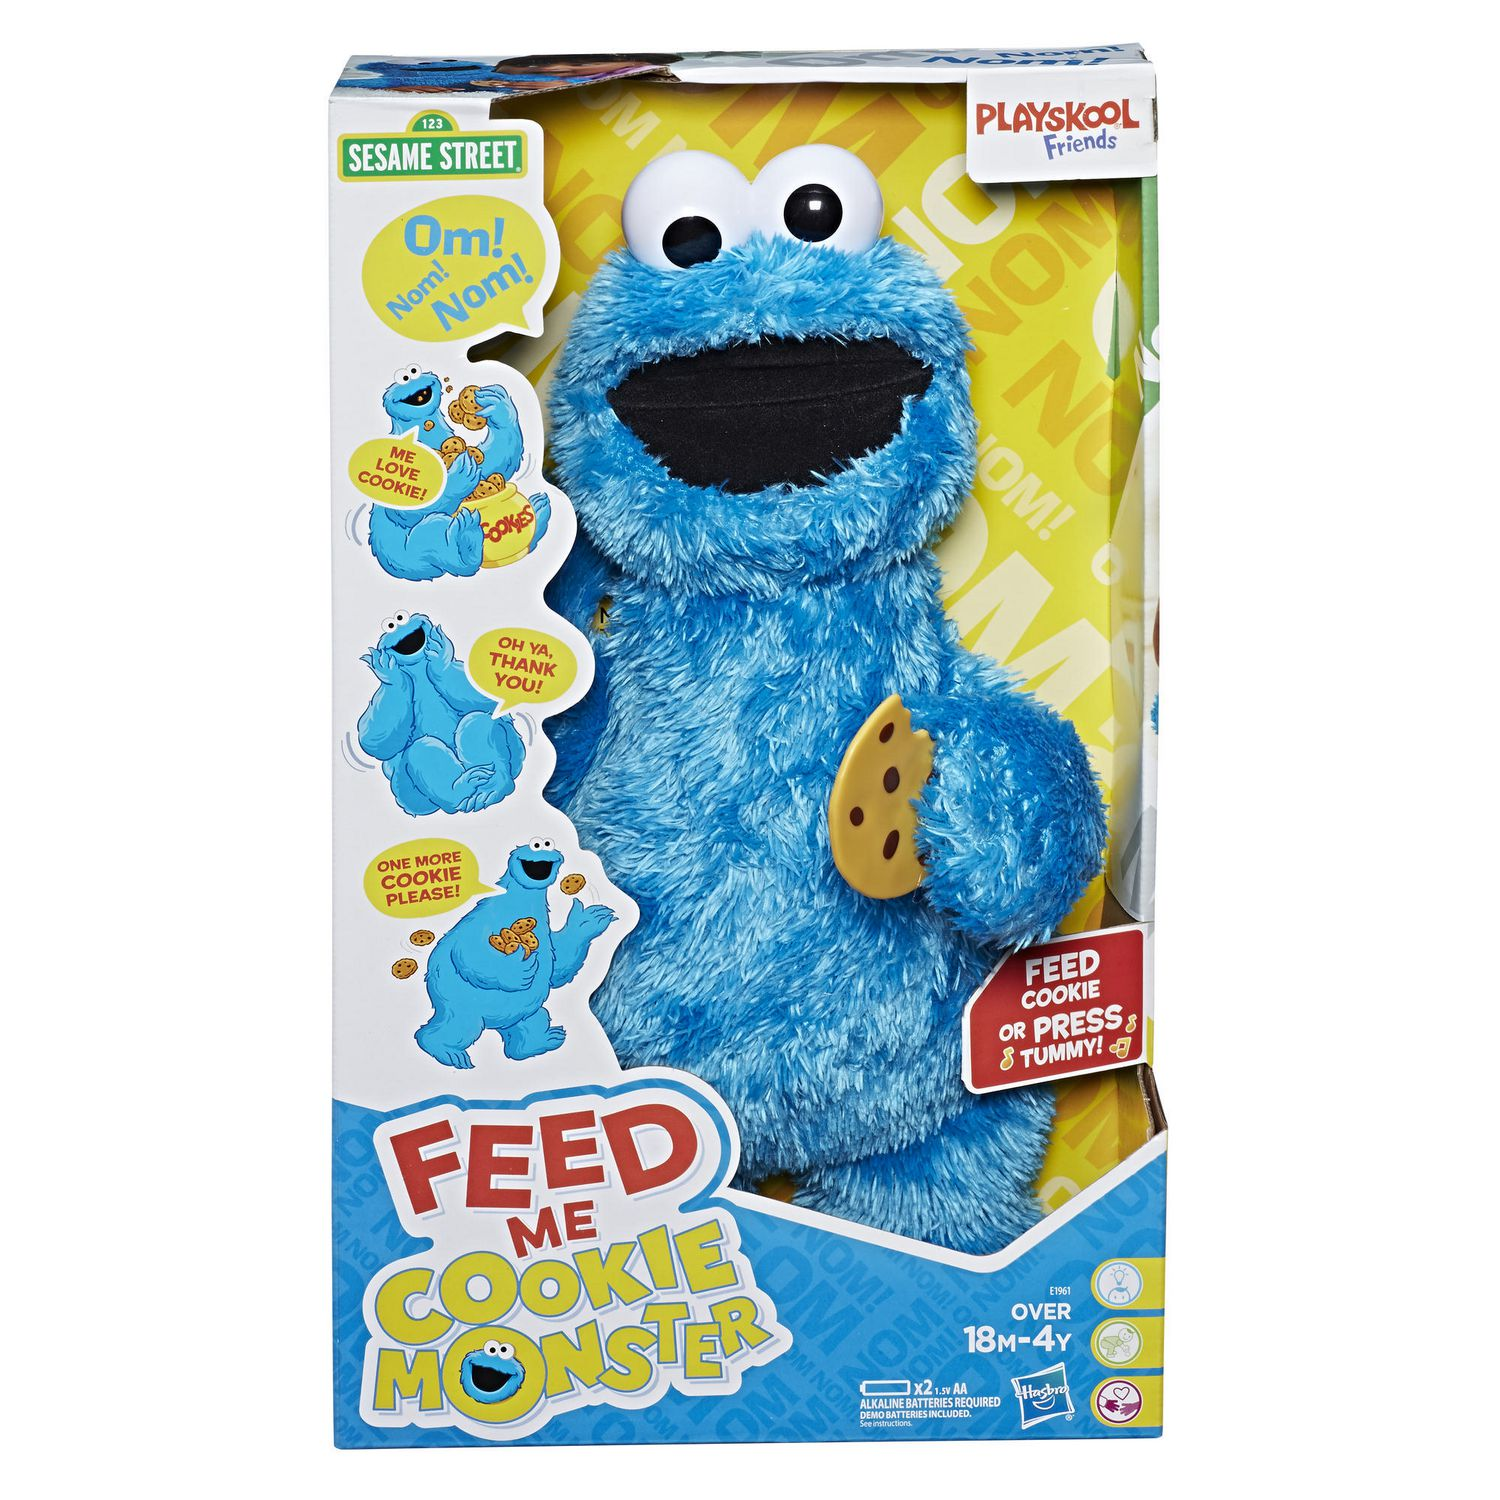 Belly Rumble Furry: Playskool Friends Sesame Street Feed Me Cookie Monster